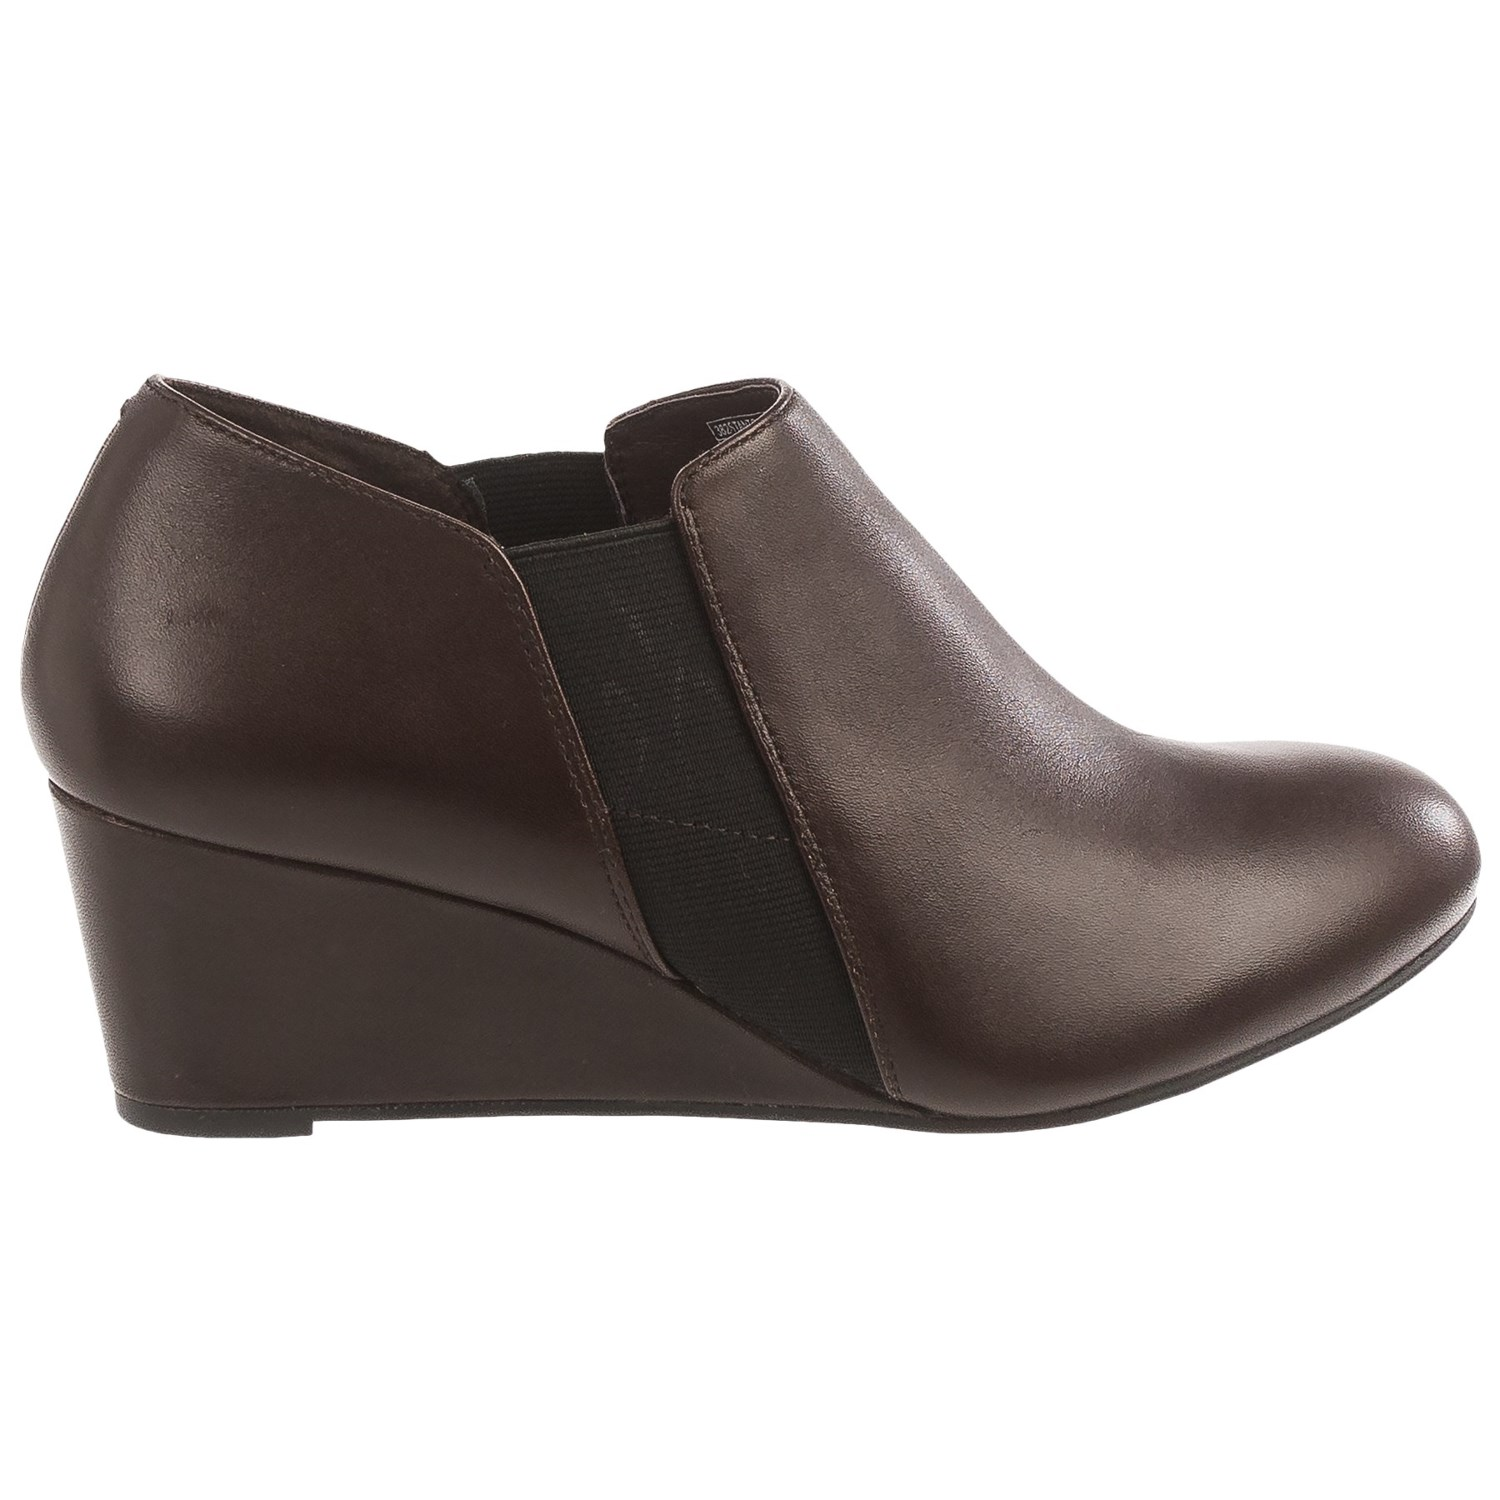 Vionic with Orthaheel Technology Stanton Ankle Boots (For Women